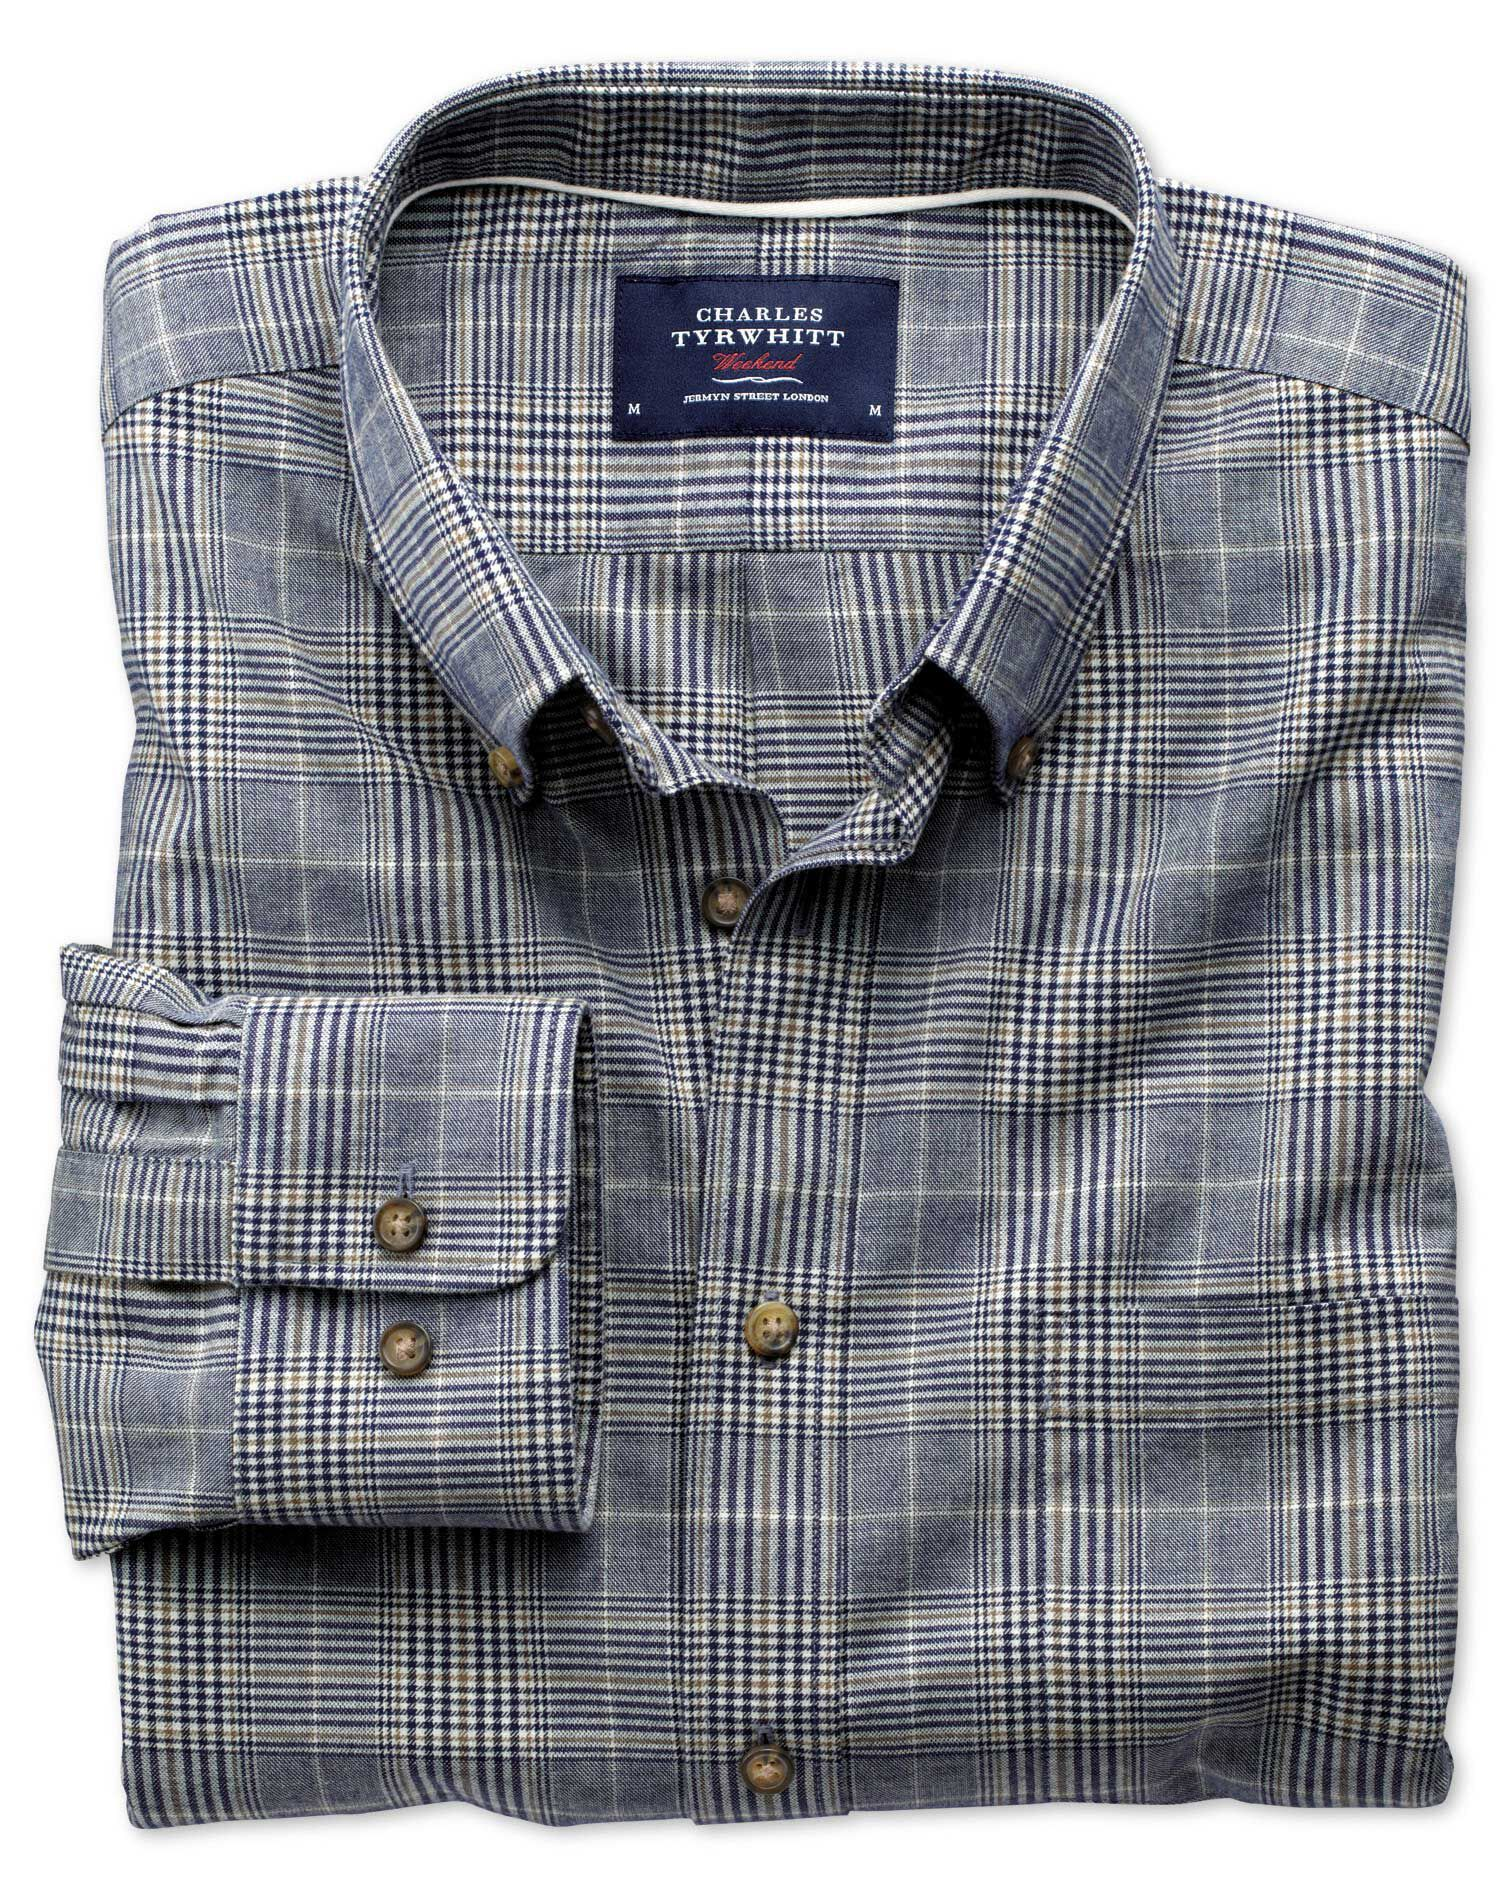 Slim Fit Navy and Brown Check Tweed Look Cotton Shirt Single Cuff Size XL by Charles Tyrwhitt